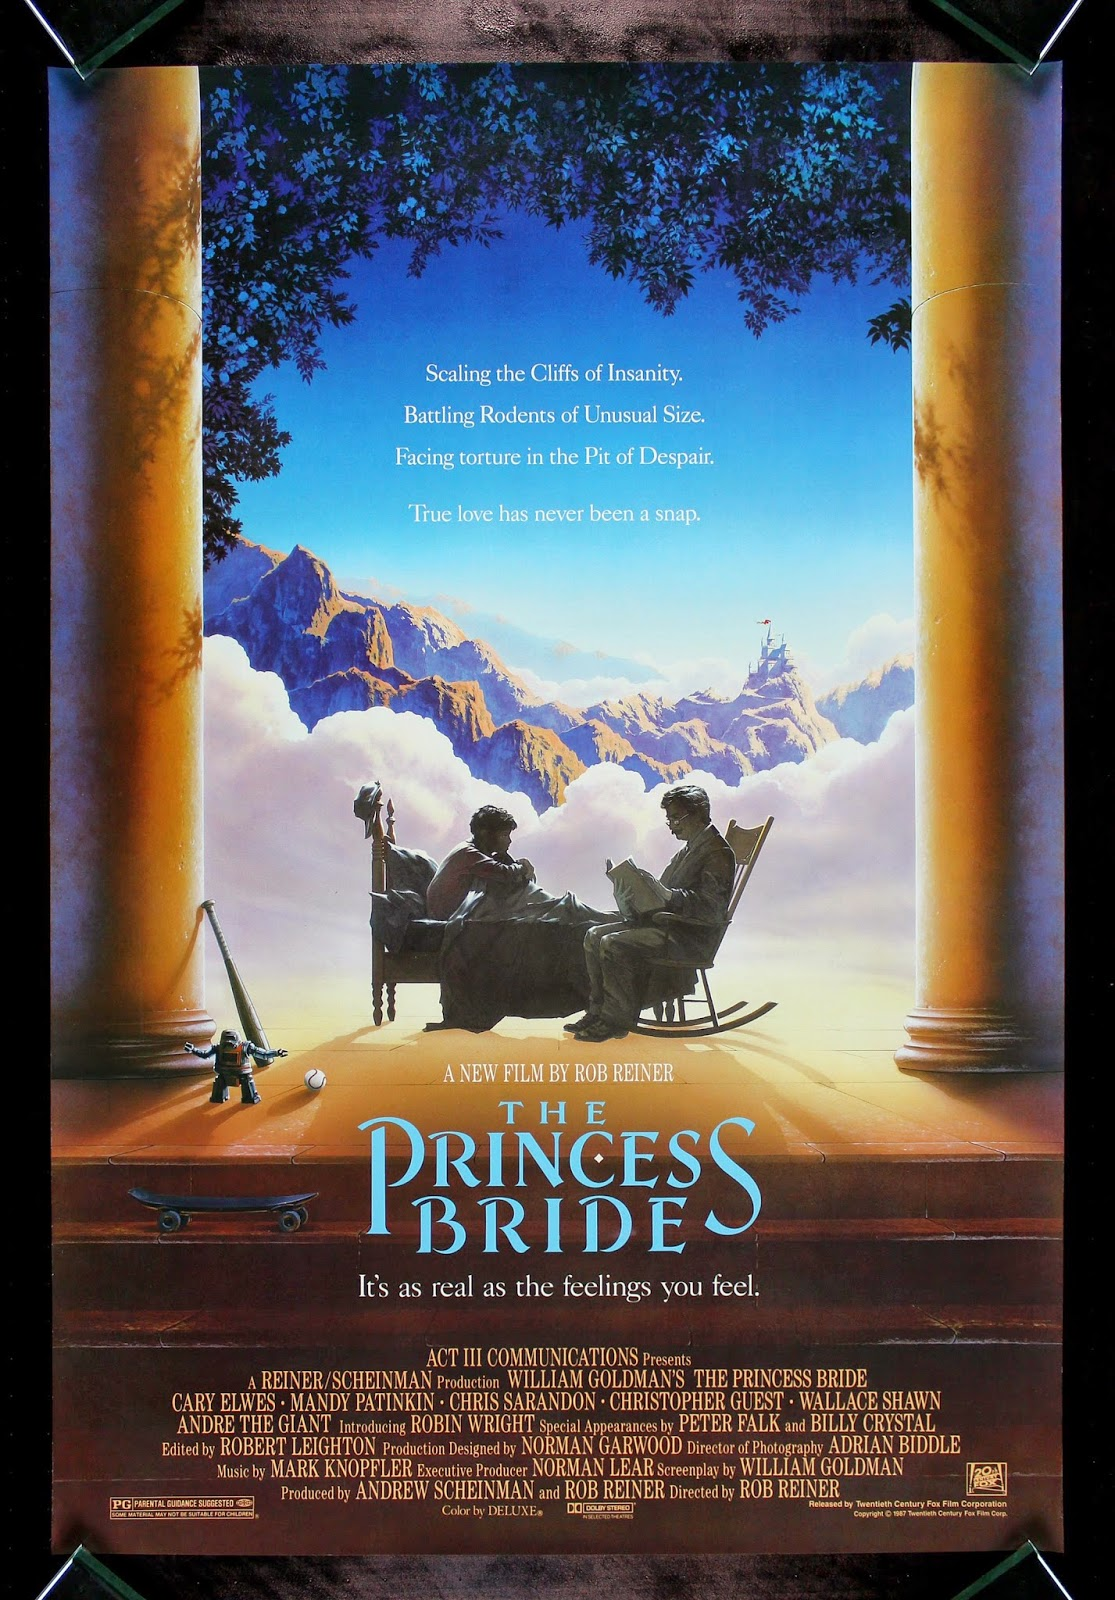 Should They Remake The Princess Bride